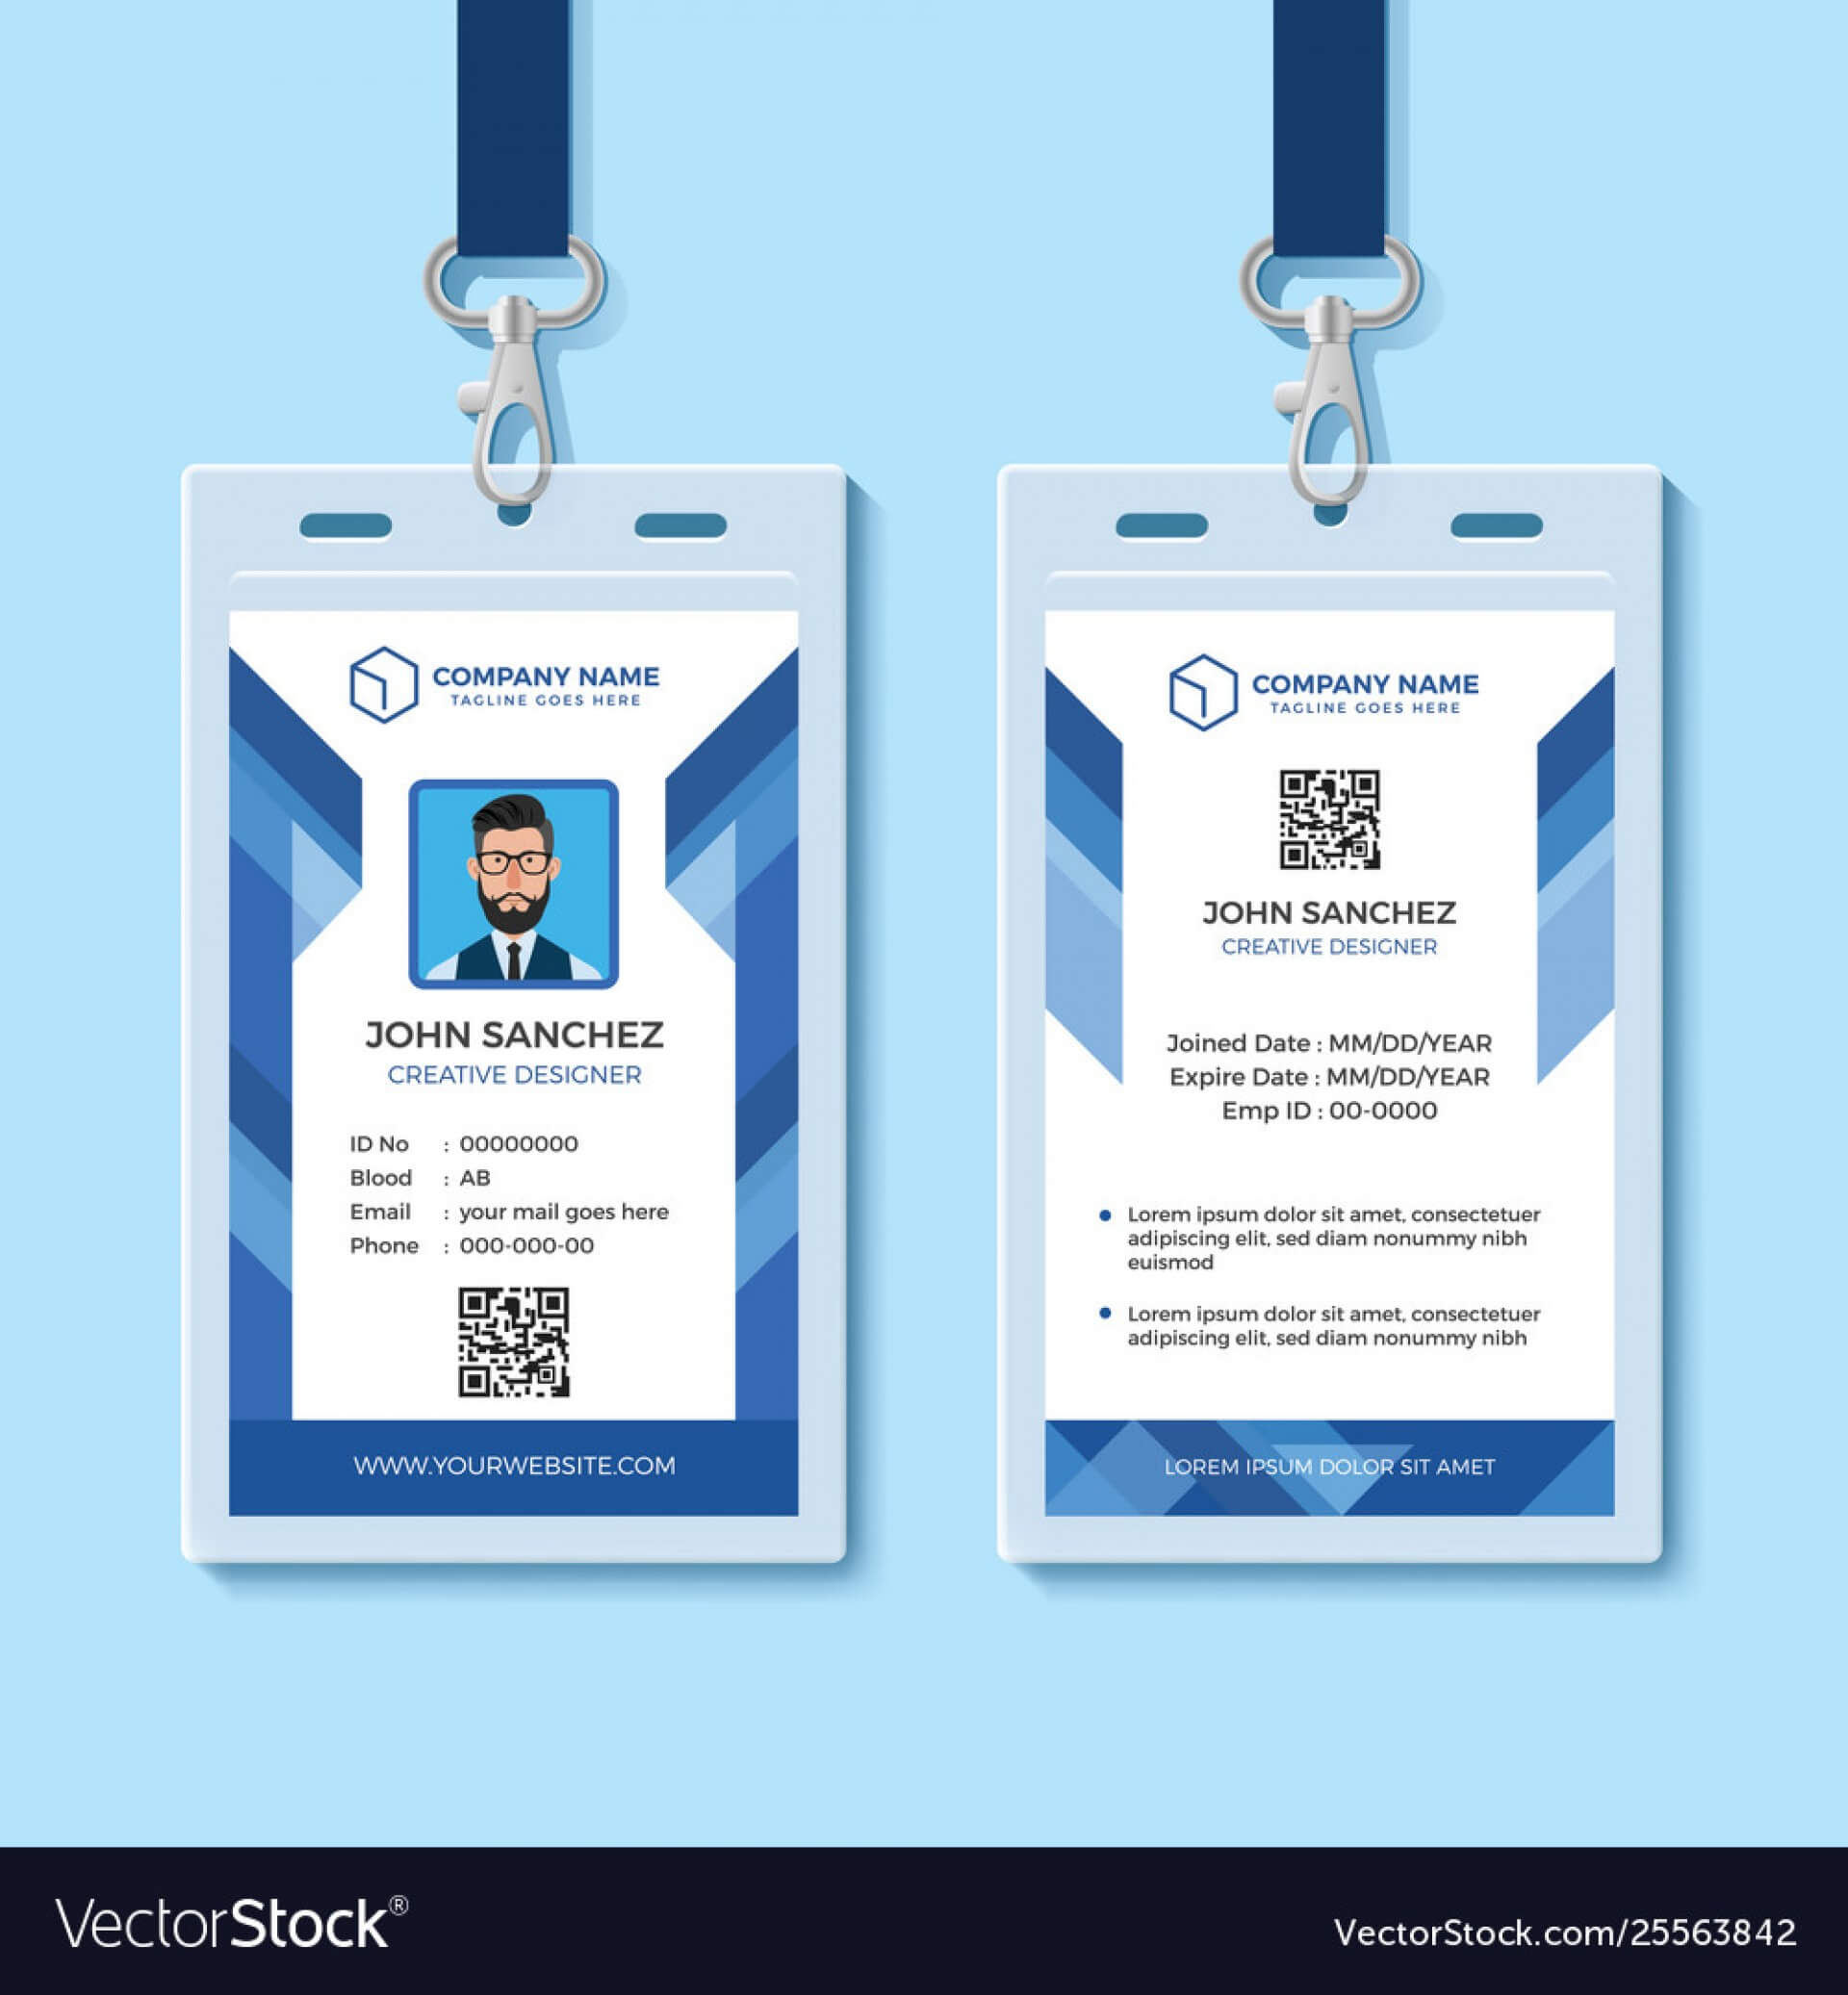 042 Template Ideas Employee Id Card Templates Blue Design Inside Id Card Template Word Free